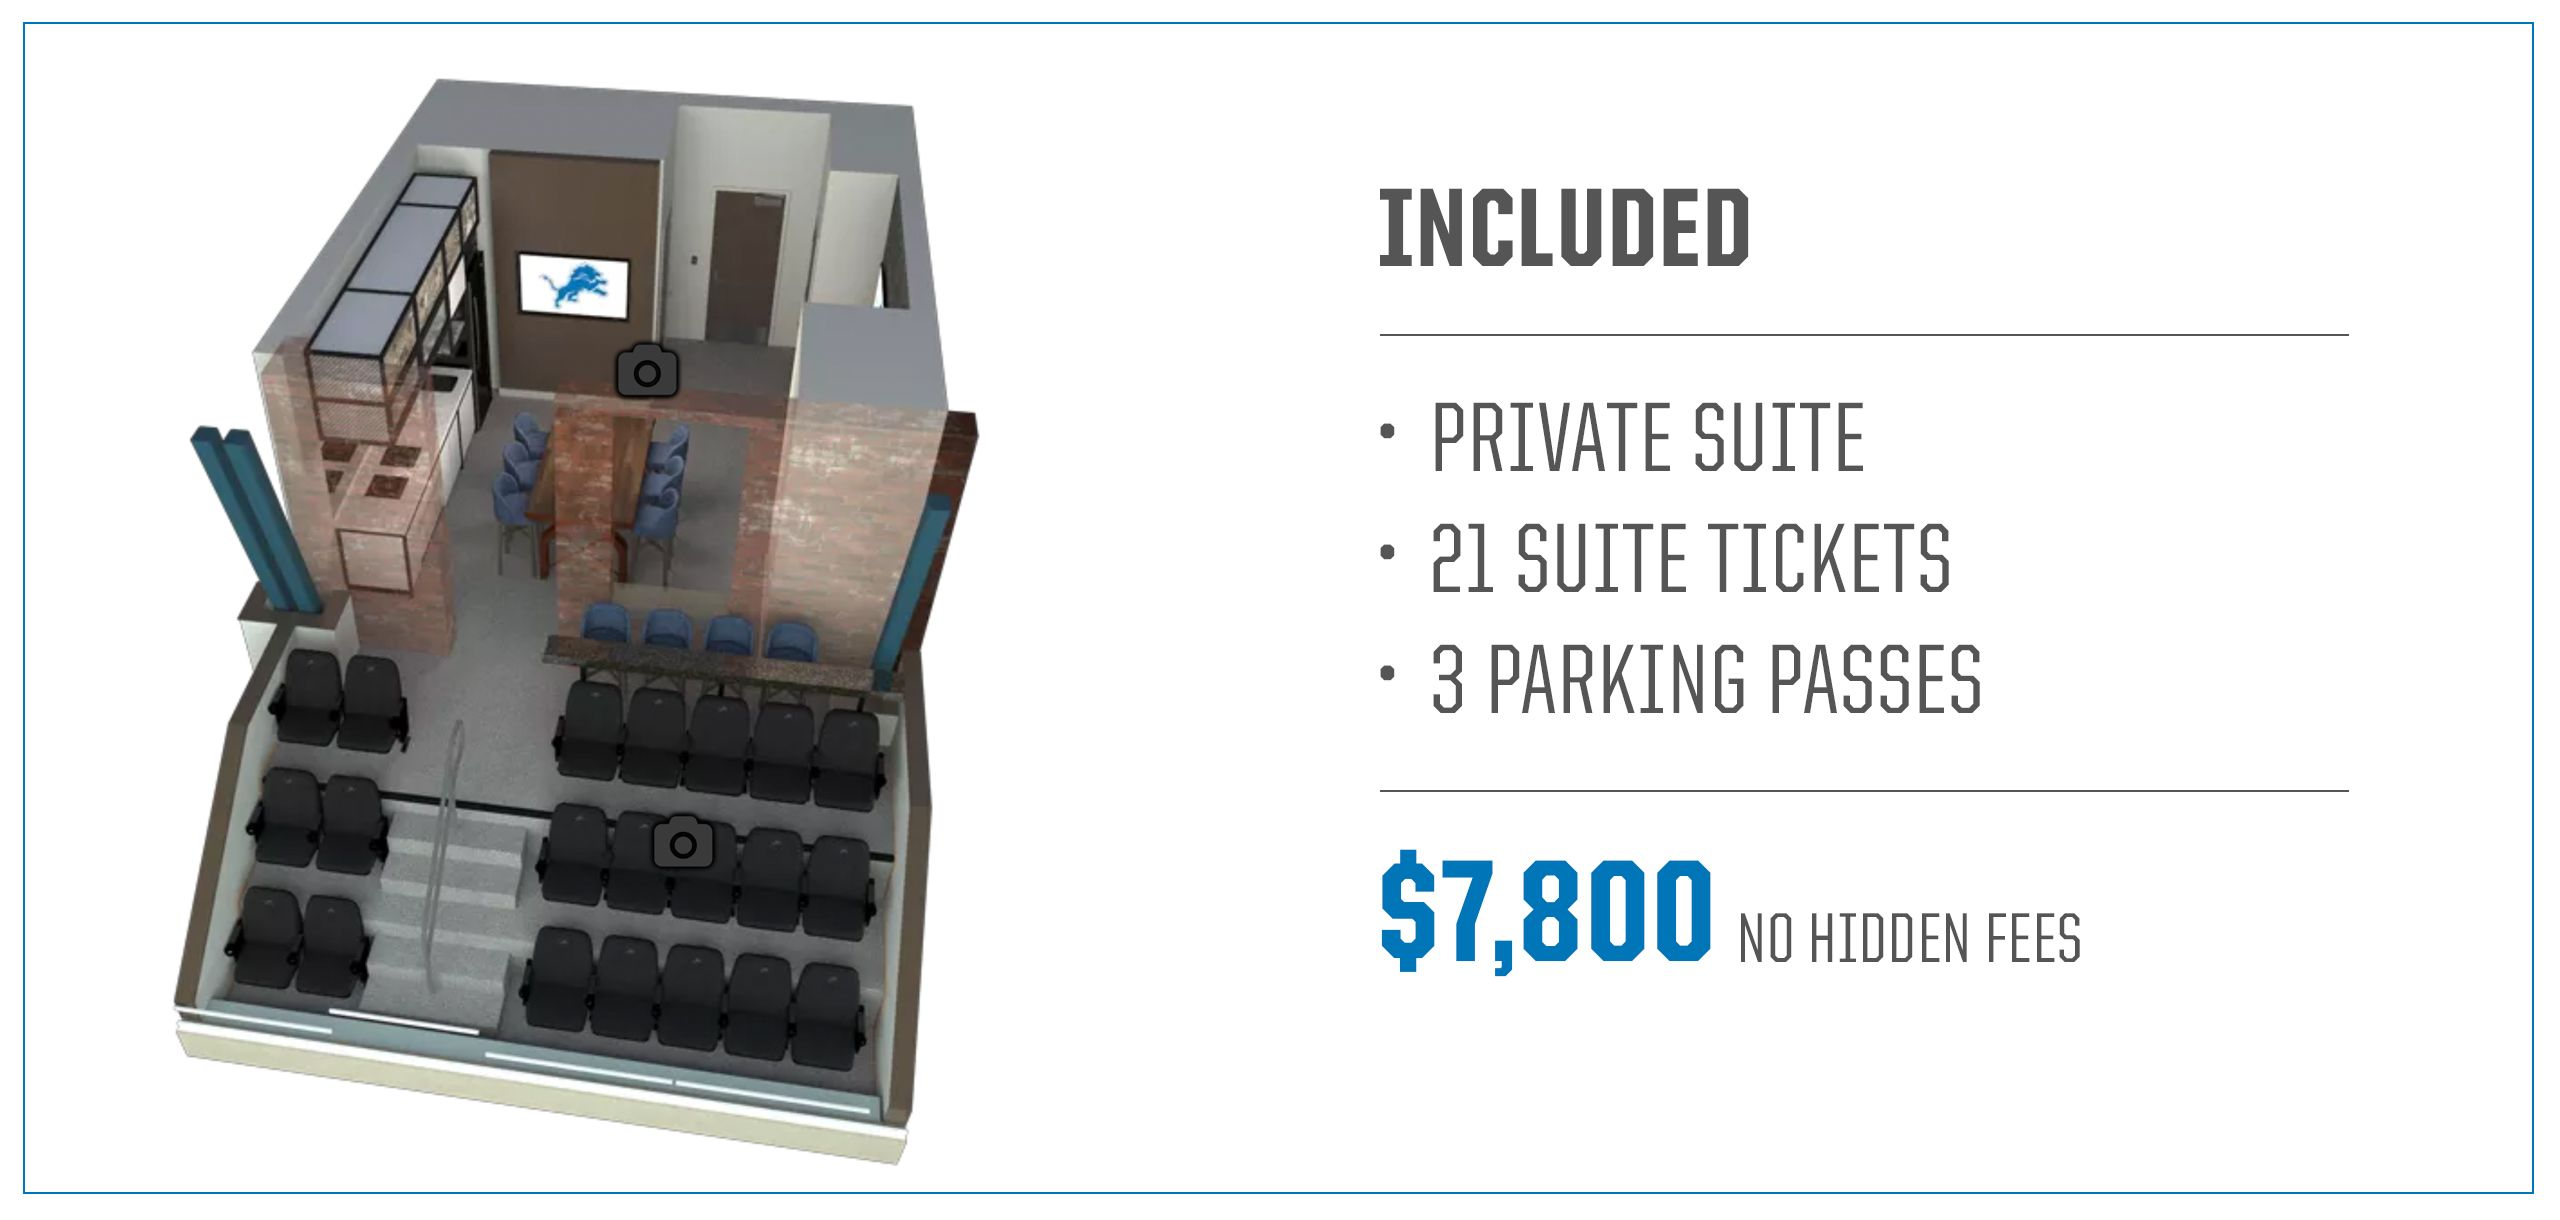 suite-purchase-information-map-605-information